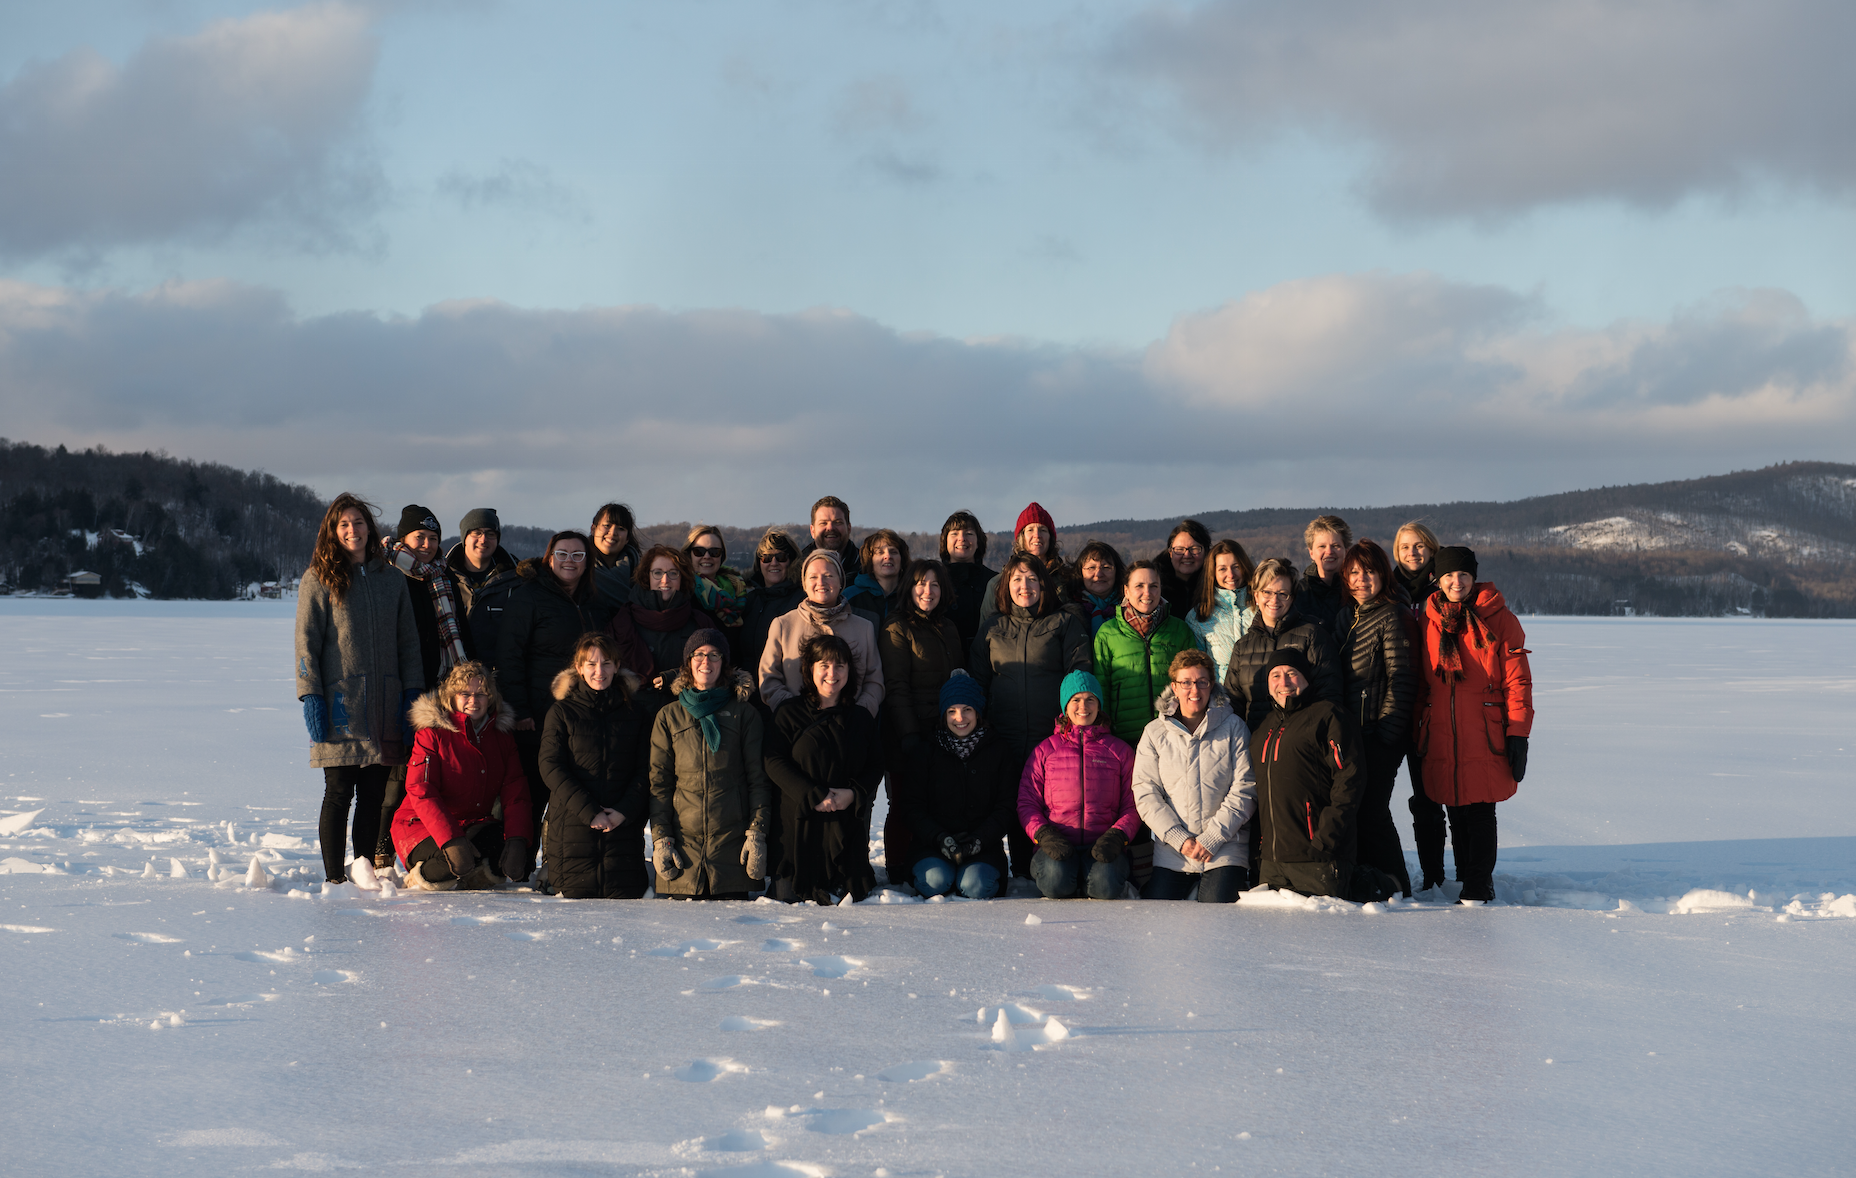 The cohort and advisors pictured out on snowy Lac MacDonald, near the Kanesatake First Nation, in rural Quebec.